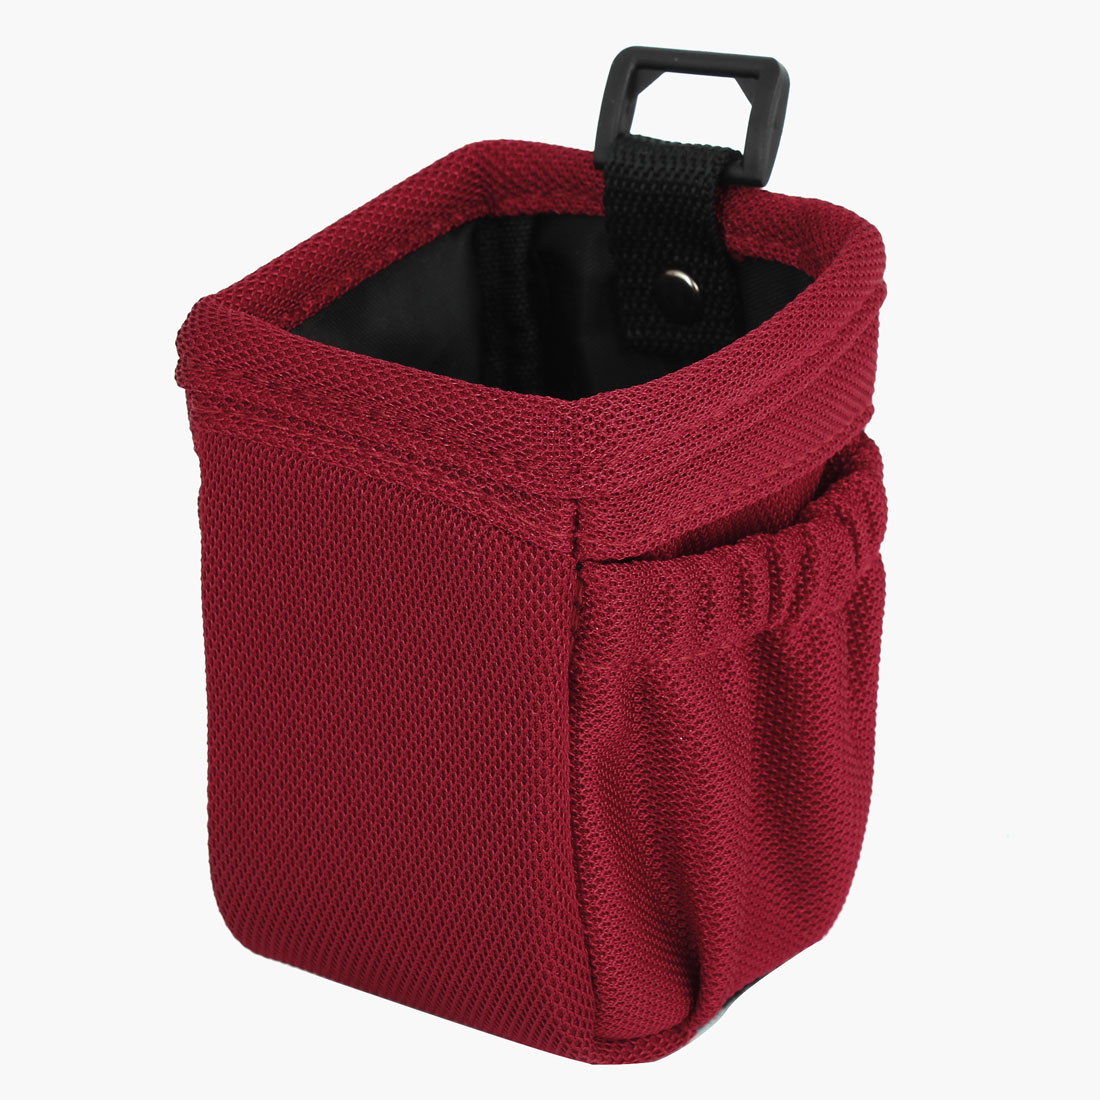 Red Nylon Square Shape Mobile Phone Pouch MP3 MP4 Holder Pocket for Car Vehicle